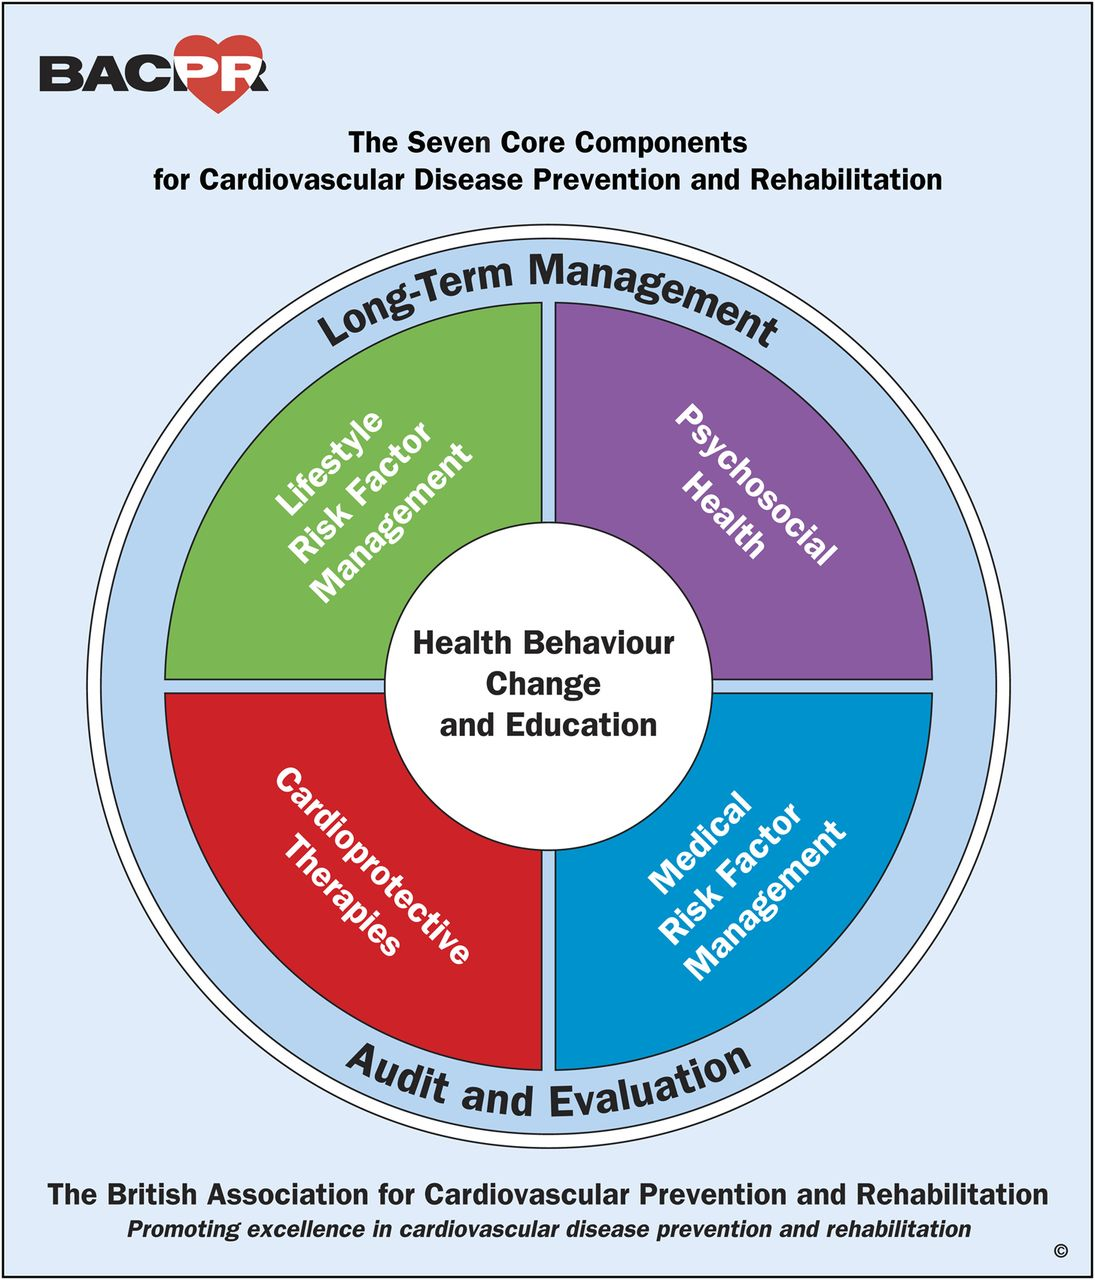 Bacpr scientific statement british standards and core components download figure ccuart Choice Image